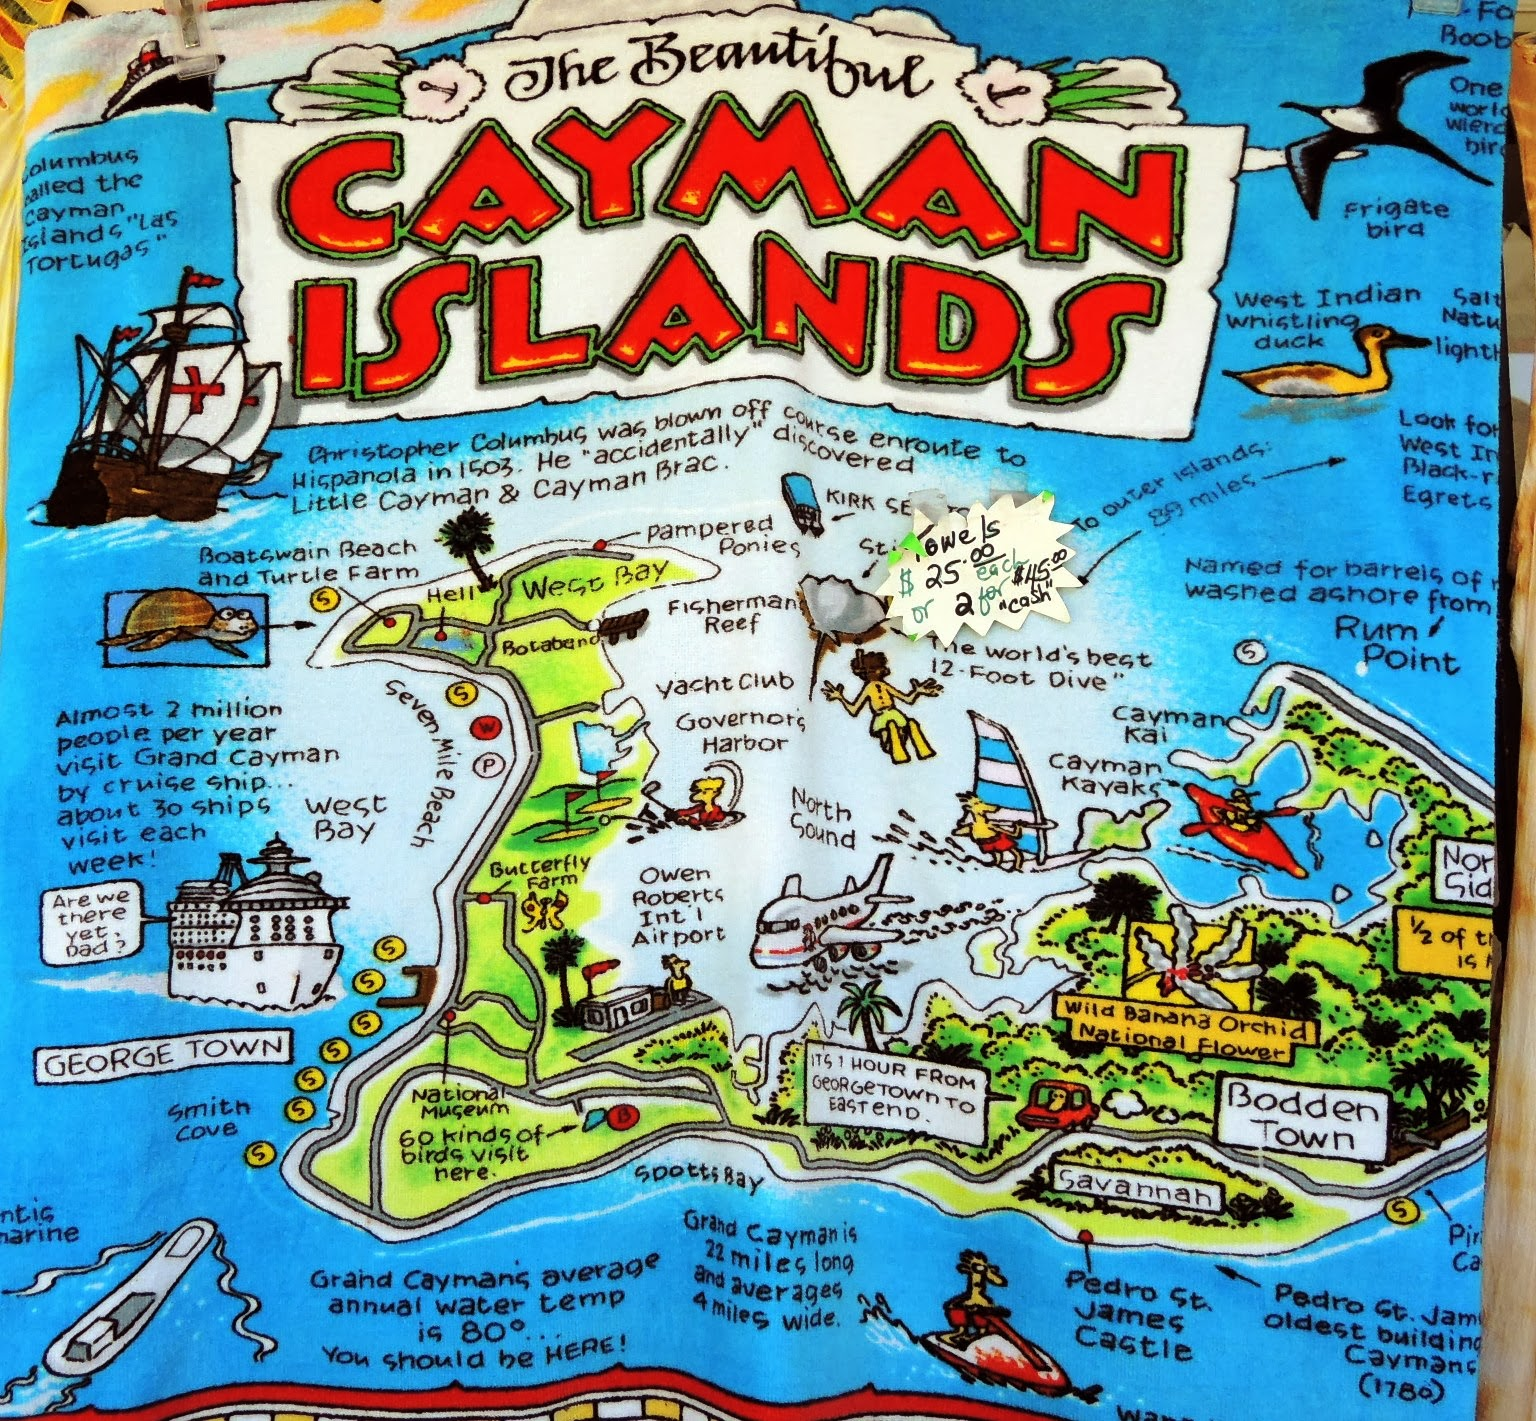 Dina's Travels: Cayman Islands stop on turtle farms in the usa, turtle farm grand cayman weddings, turtle farm isla mujeres, turtle island before columbus, turtle farm cayman islands, turtle reef grand cayman, turtle tank in grand cayman, cayman islands map, turtle underwater map,